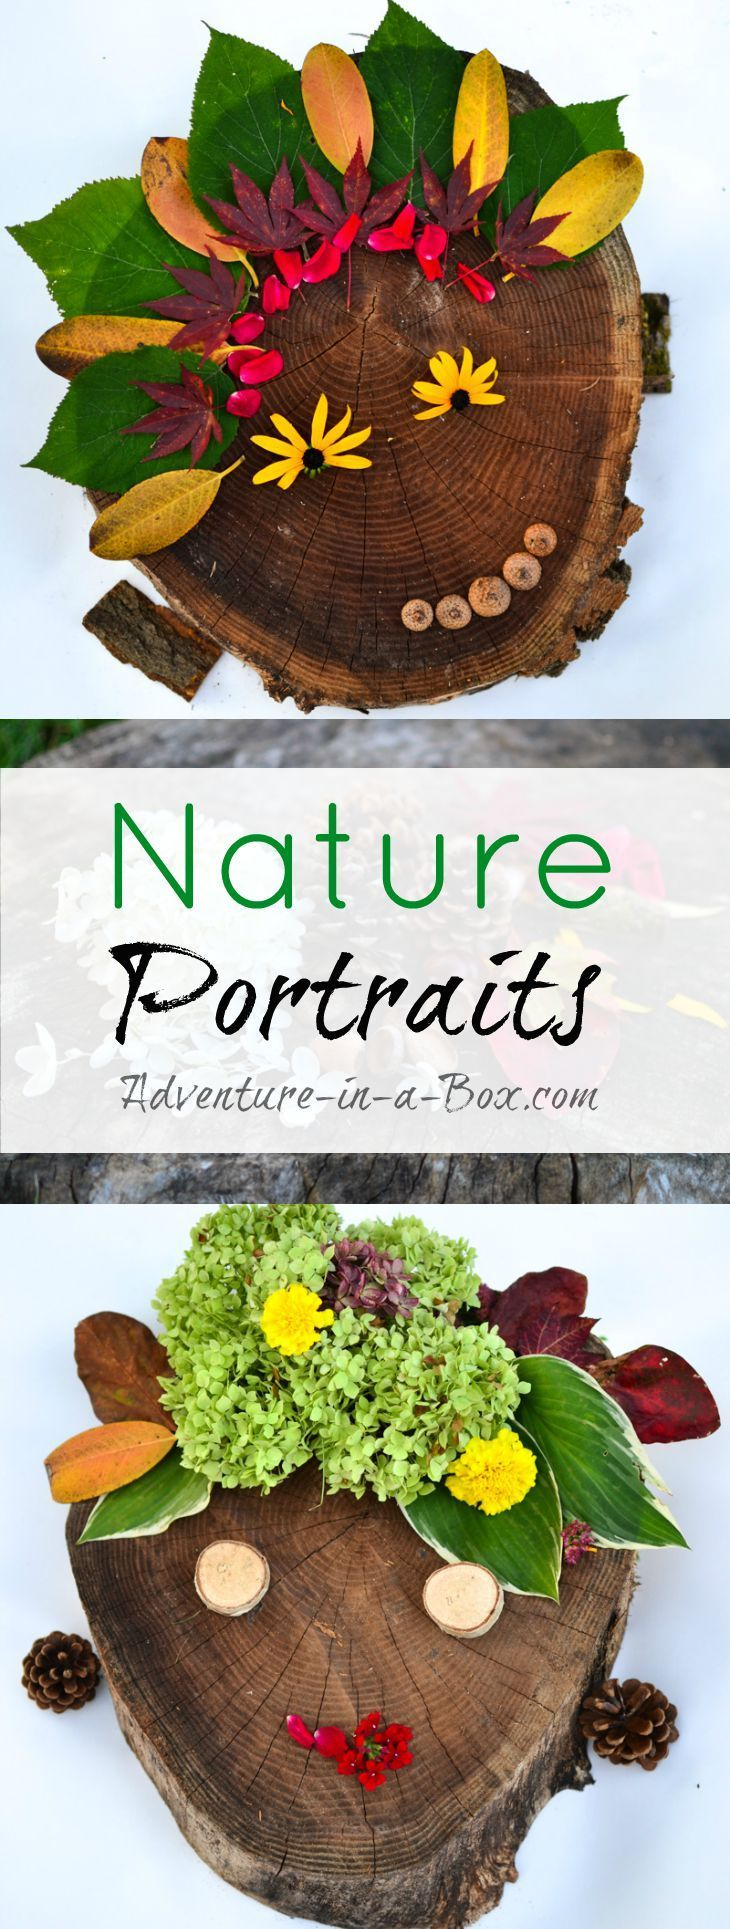 Nature Portraits: With a few autumn leaves, acorns and chestnuts and a lot of imagination, a stump can turn into a canvas for creating portraits of your family. Beautiful nature-inspired autumn craft for kids!